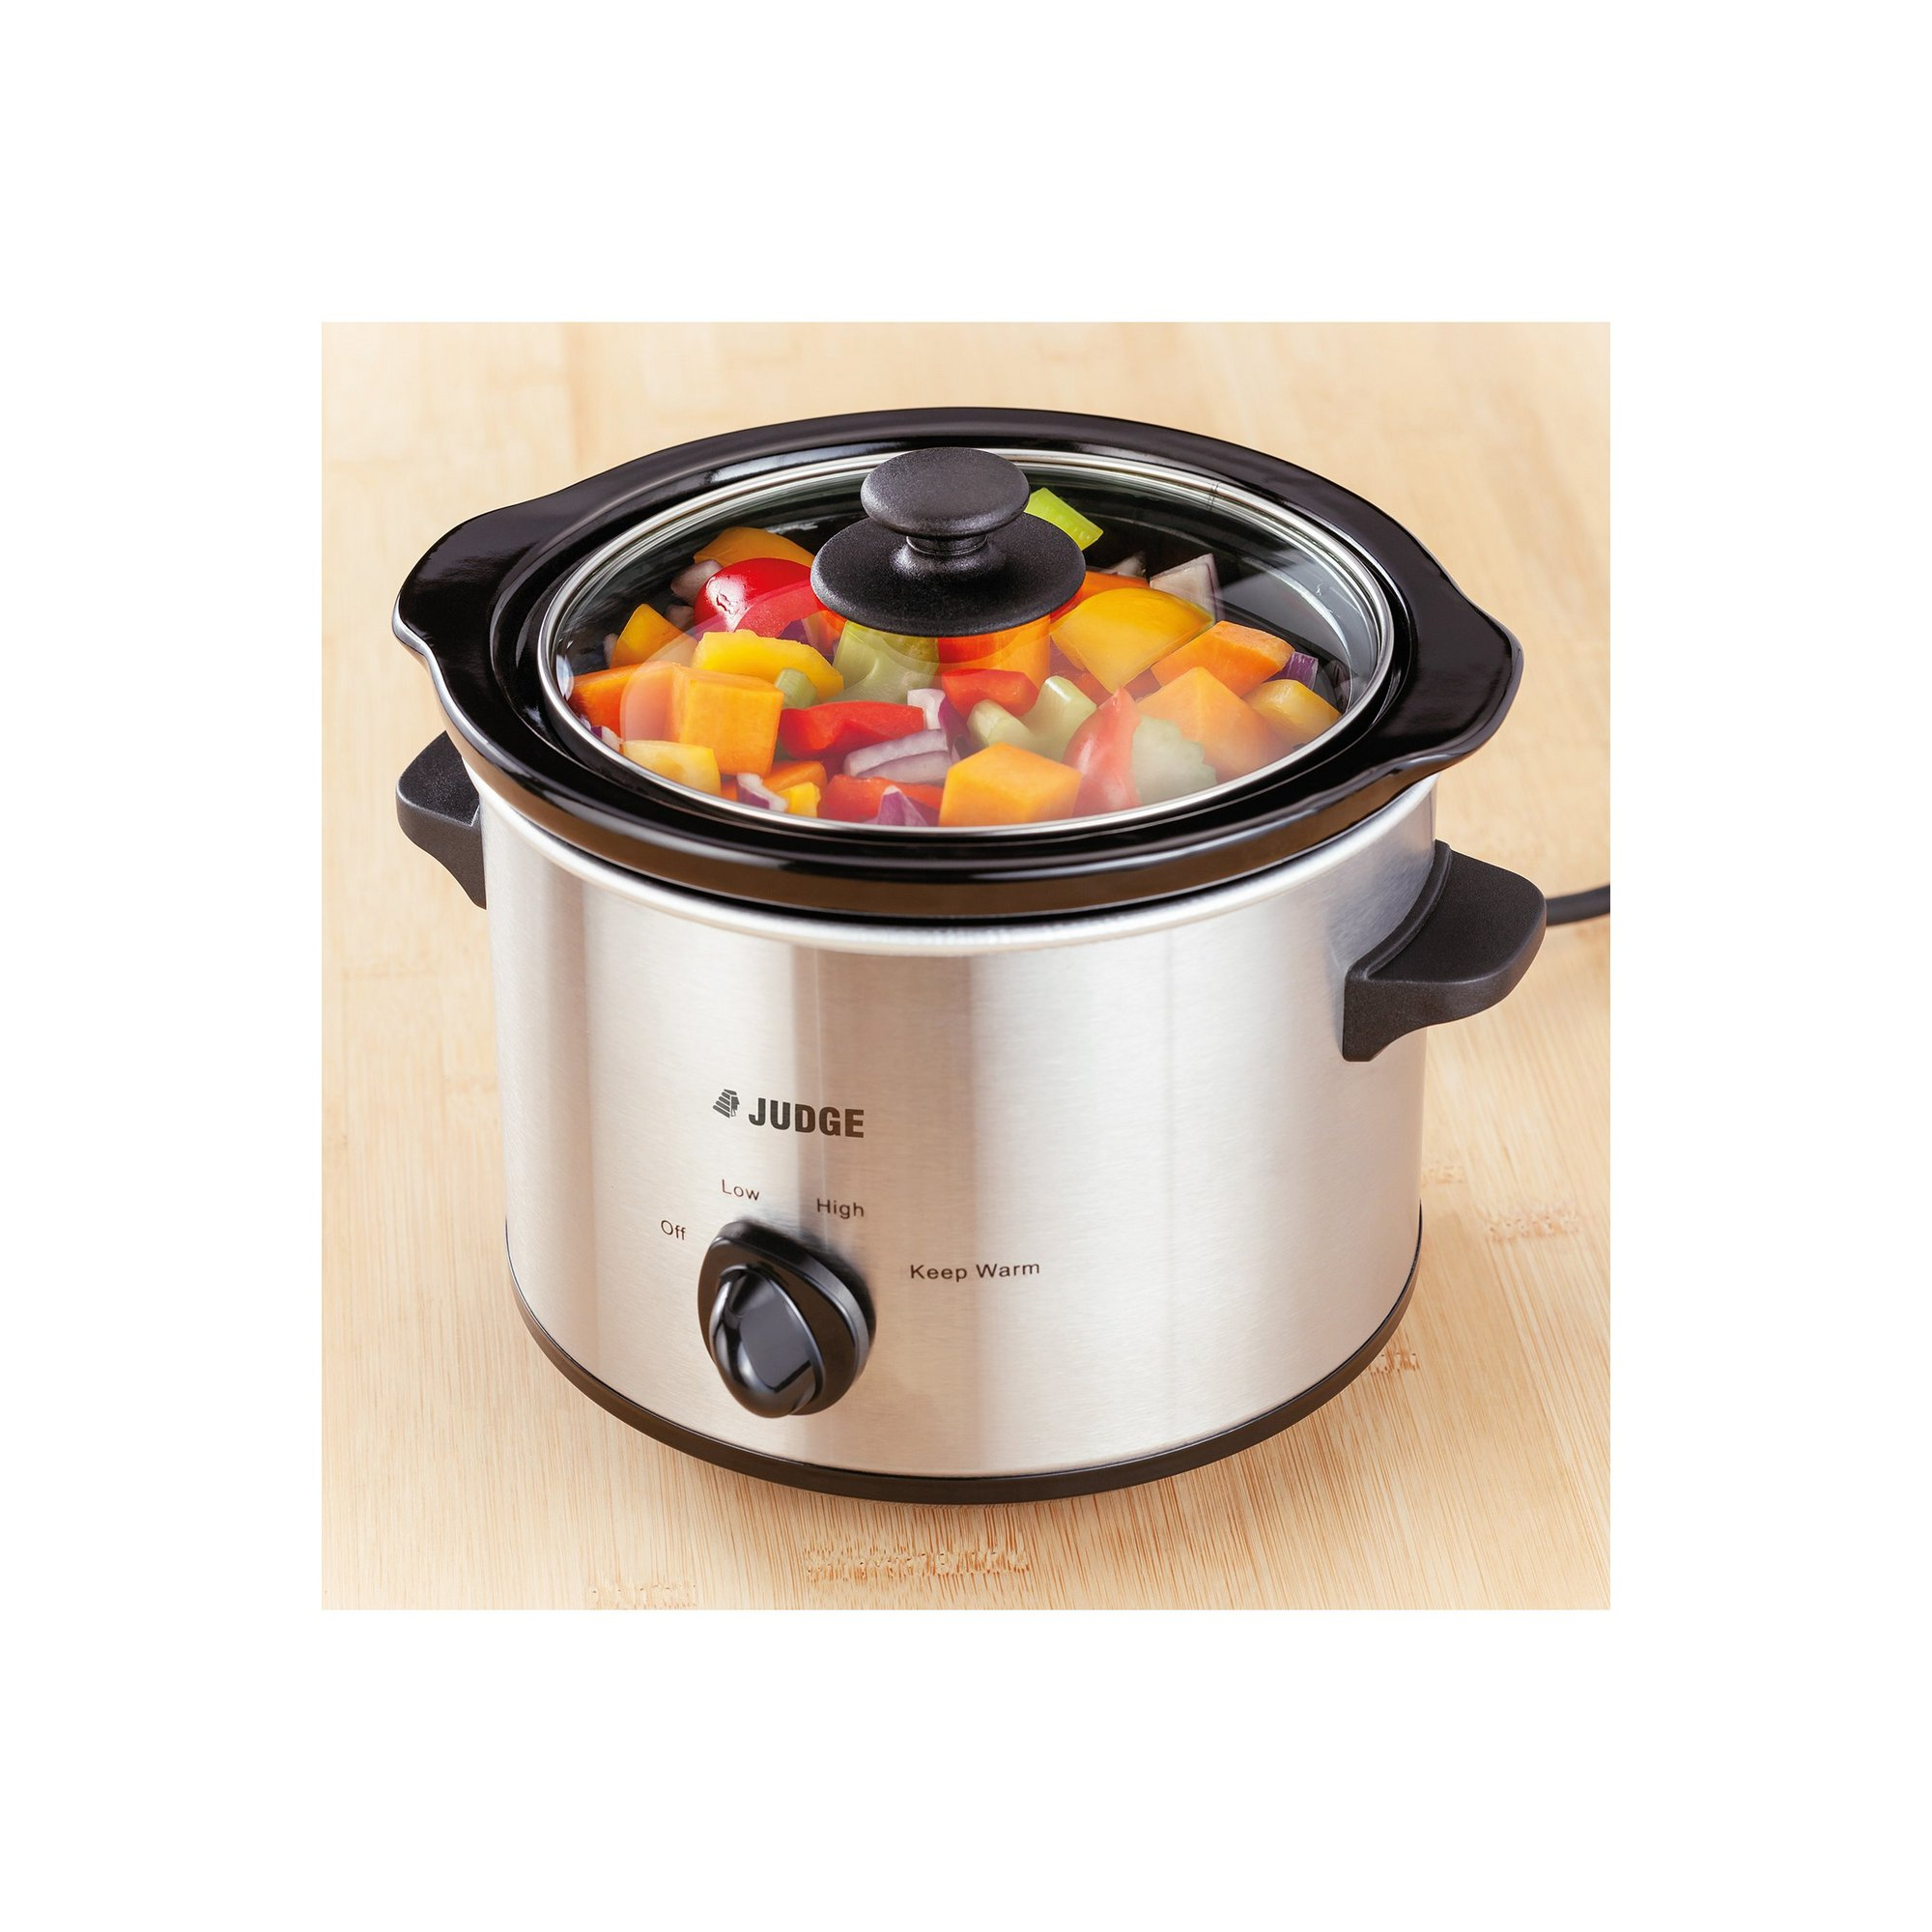 Image of Judge 1.5 Litre Slow Cooker